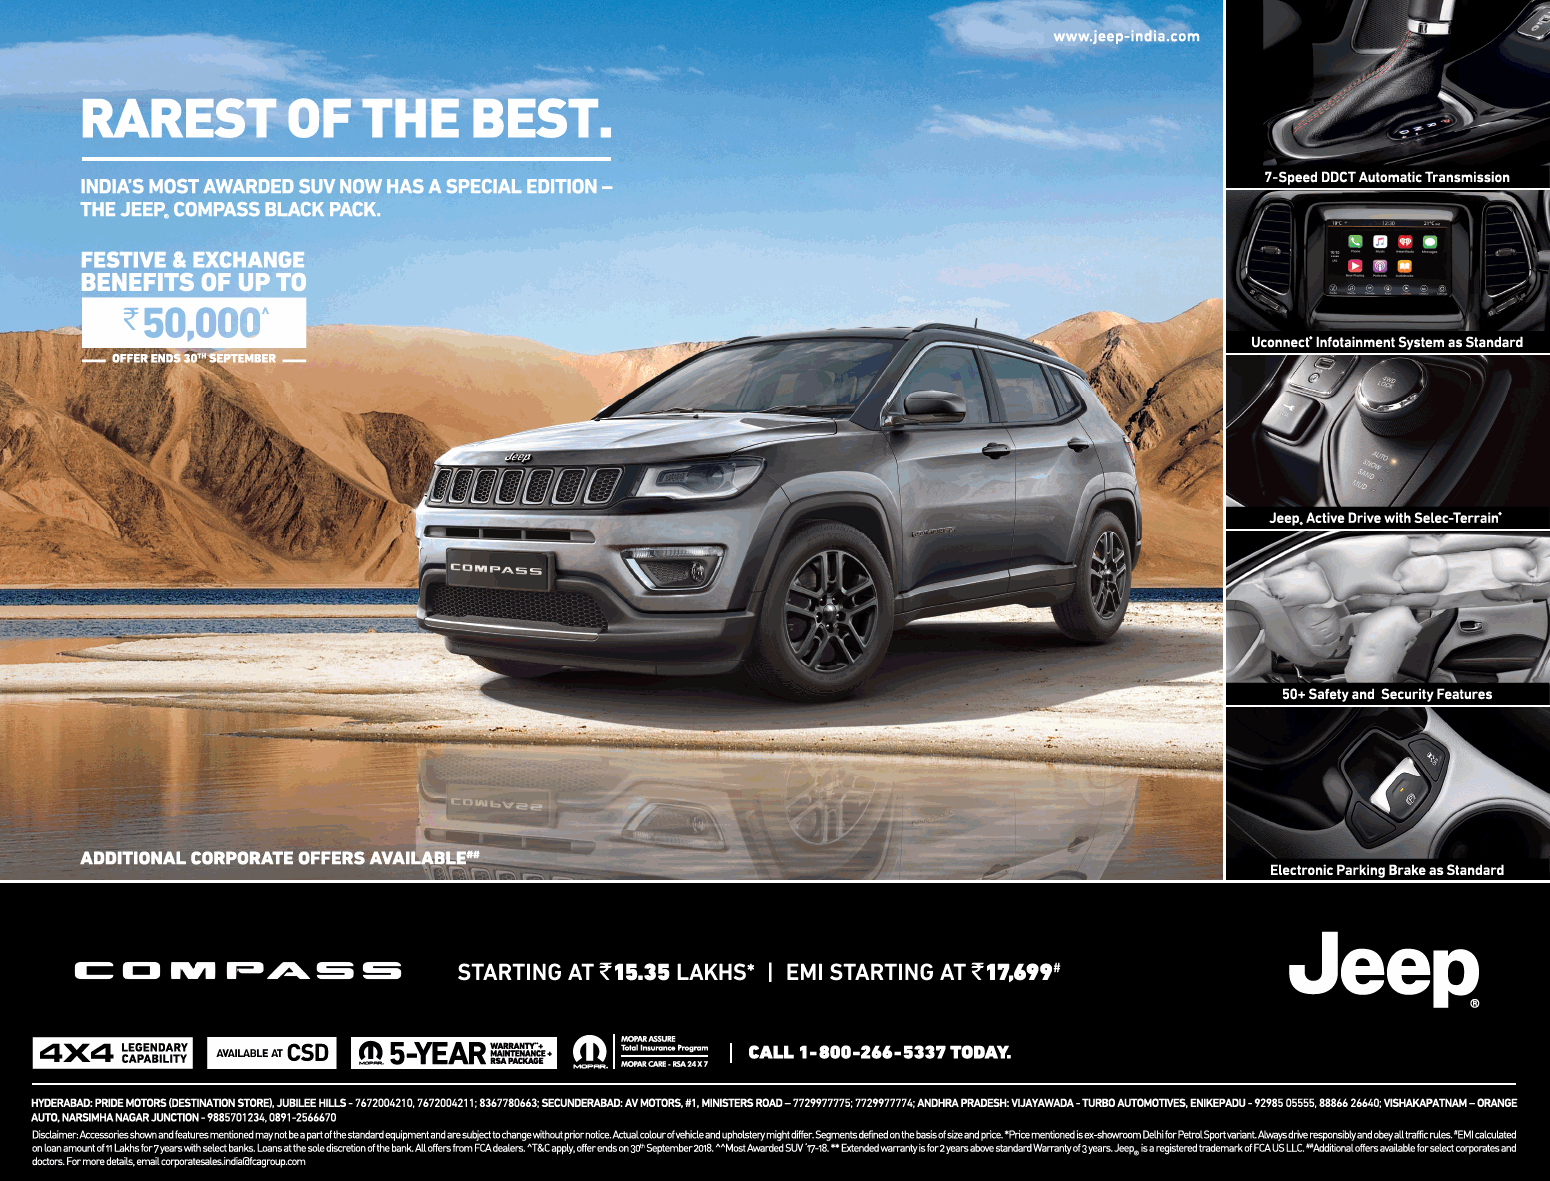 Jeep Compss Rarest Of The Best Ad Best Ads Jeep Jeep Compass